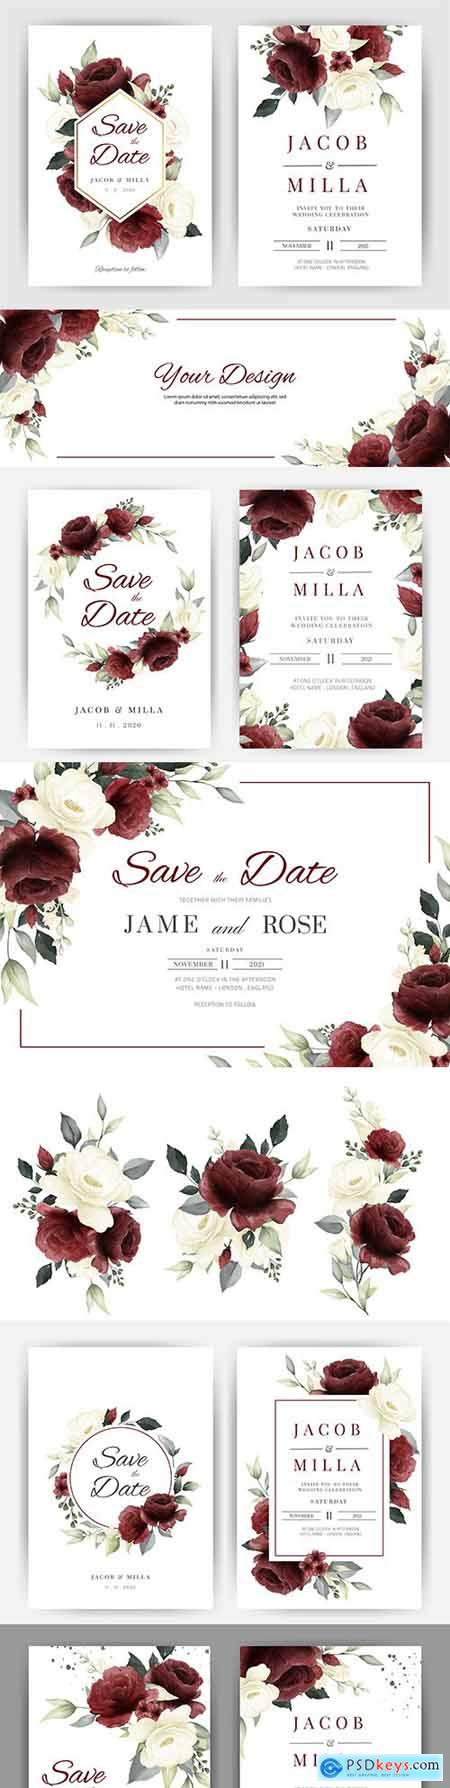 Wedding invitation template watercolor flower and green leaves 8